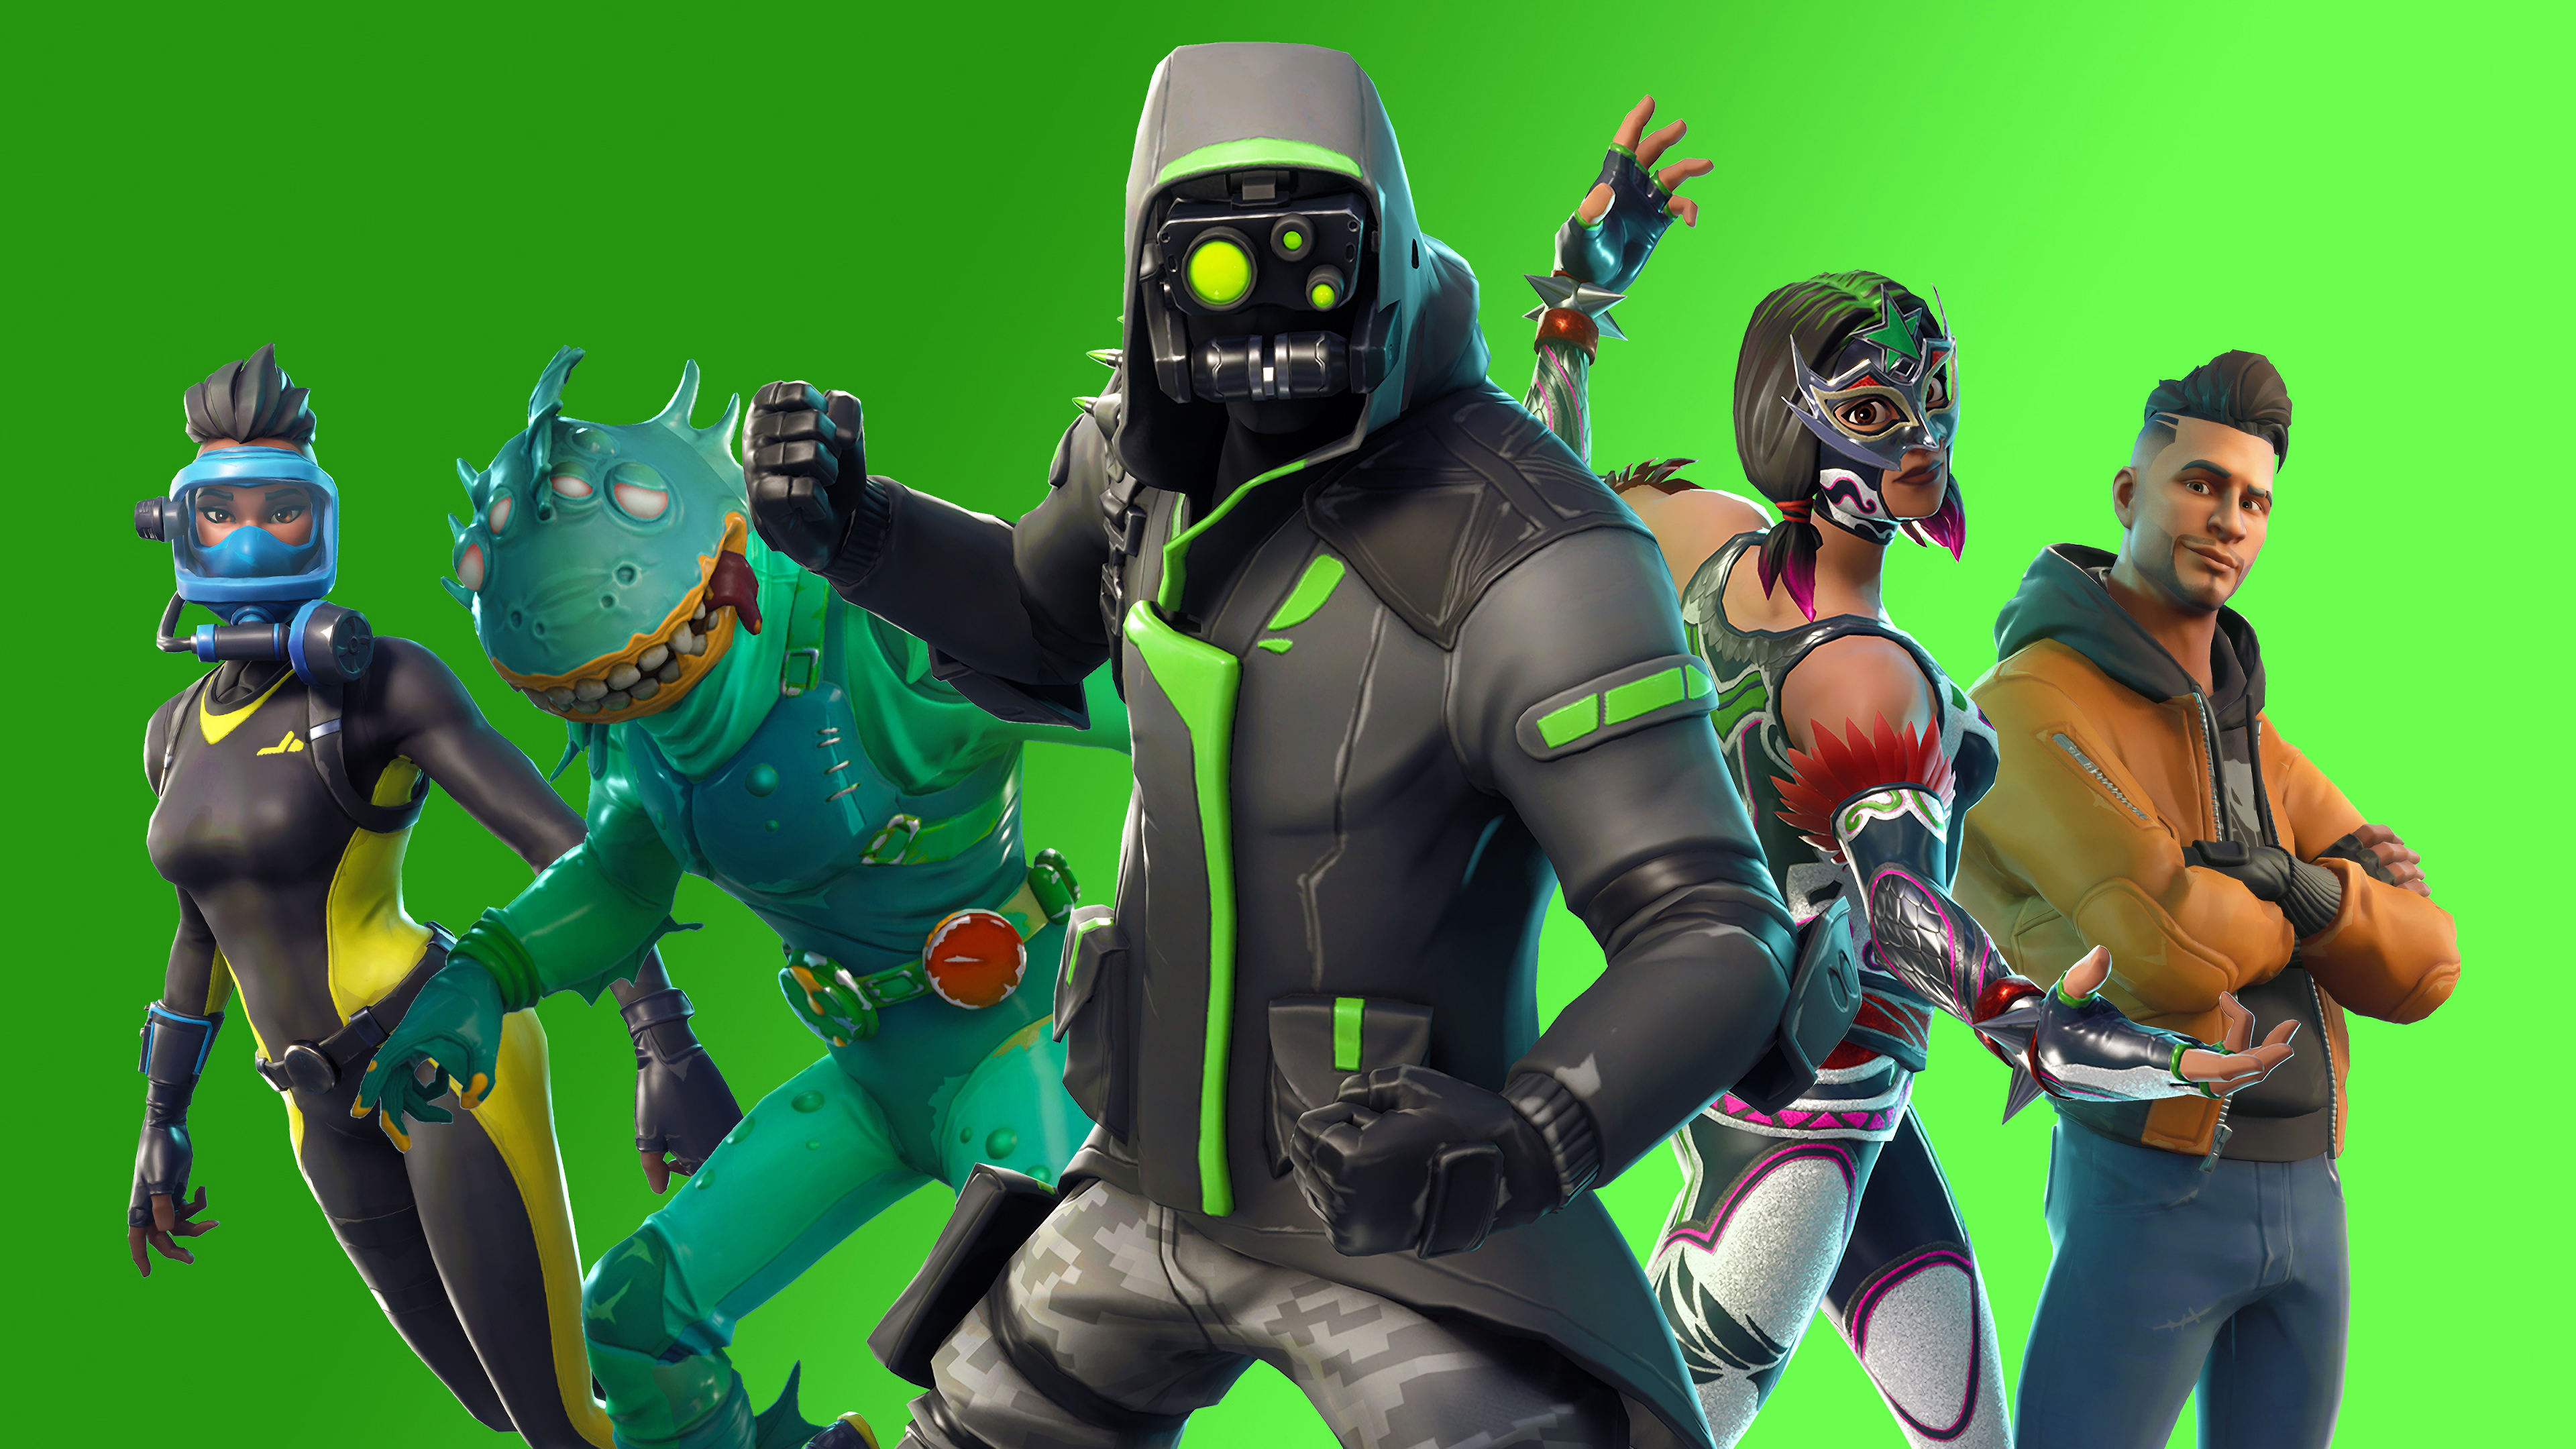 Fortnite Battle Royale Season 6 HD Games 4k Wallpapers Images 3840x2160